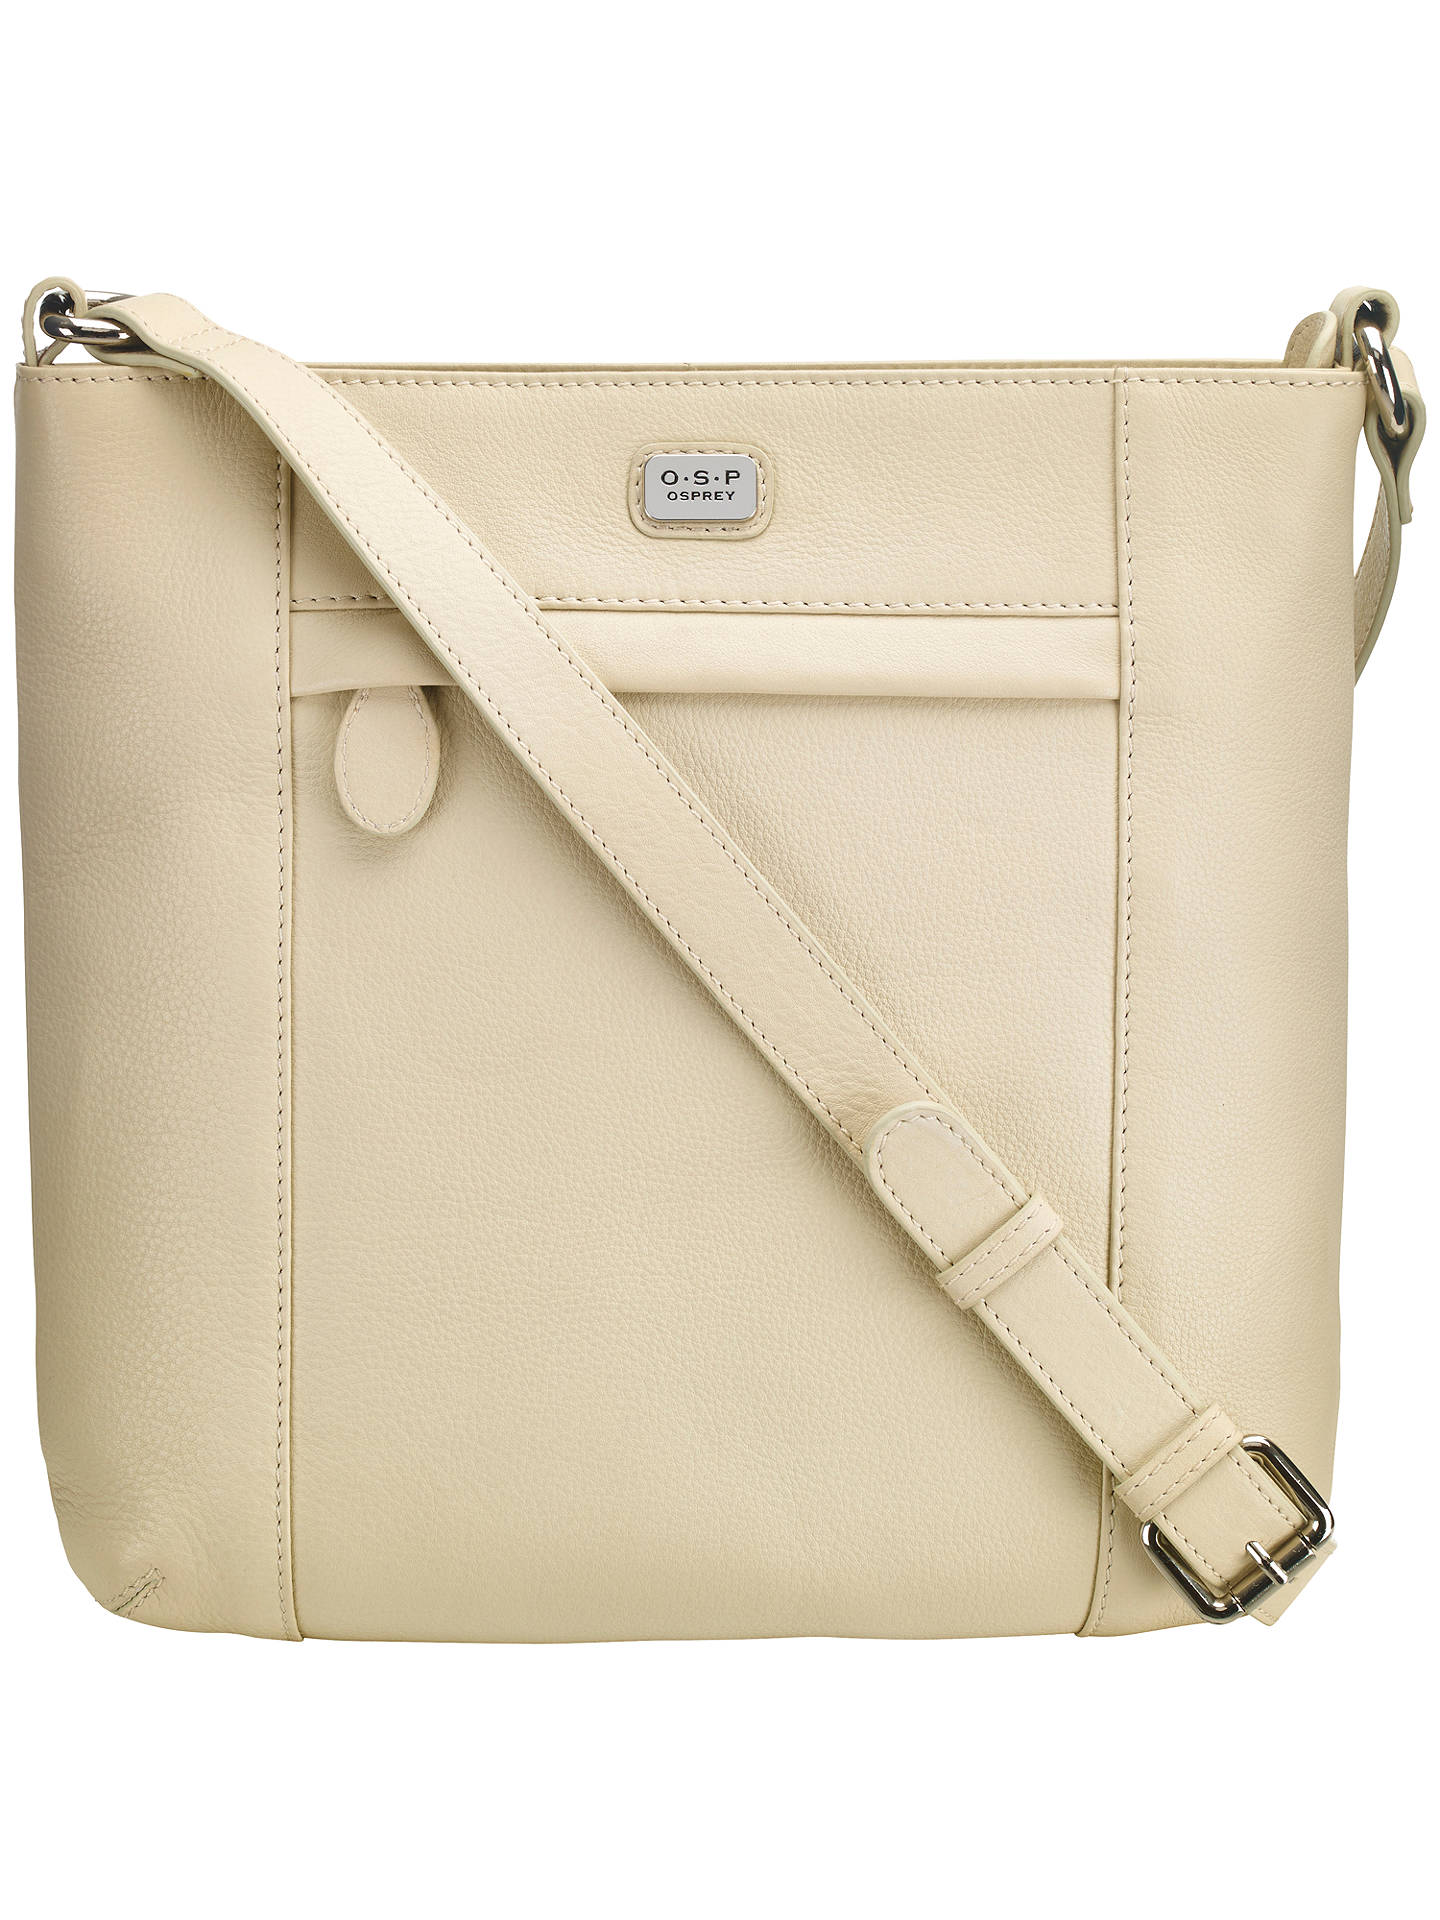 39f978fbb66 Buy O.S.P OSPREY Murano Medium Leather Across Body Bag, Canvas Online at  johnlewis.com